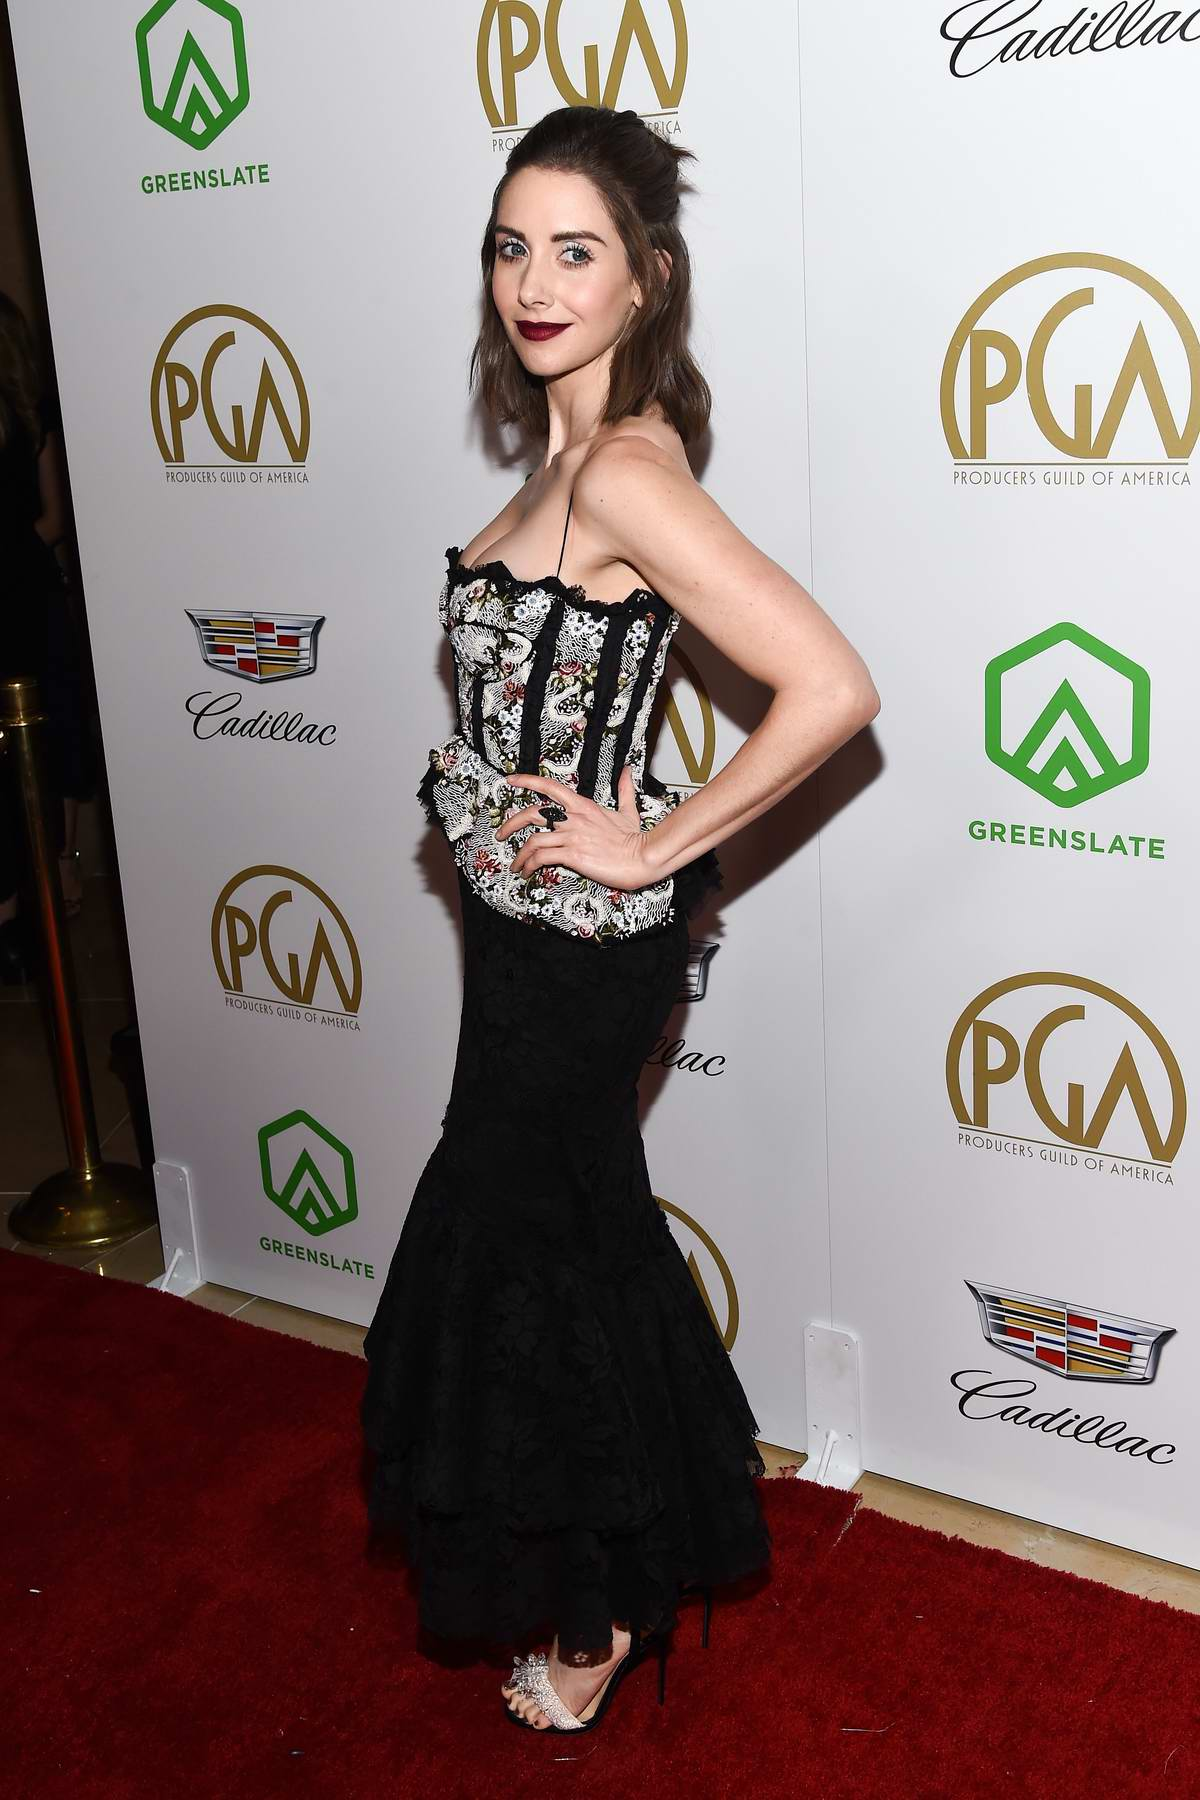 Alison Brie attends the 30th Annual Producers Guild Awards